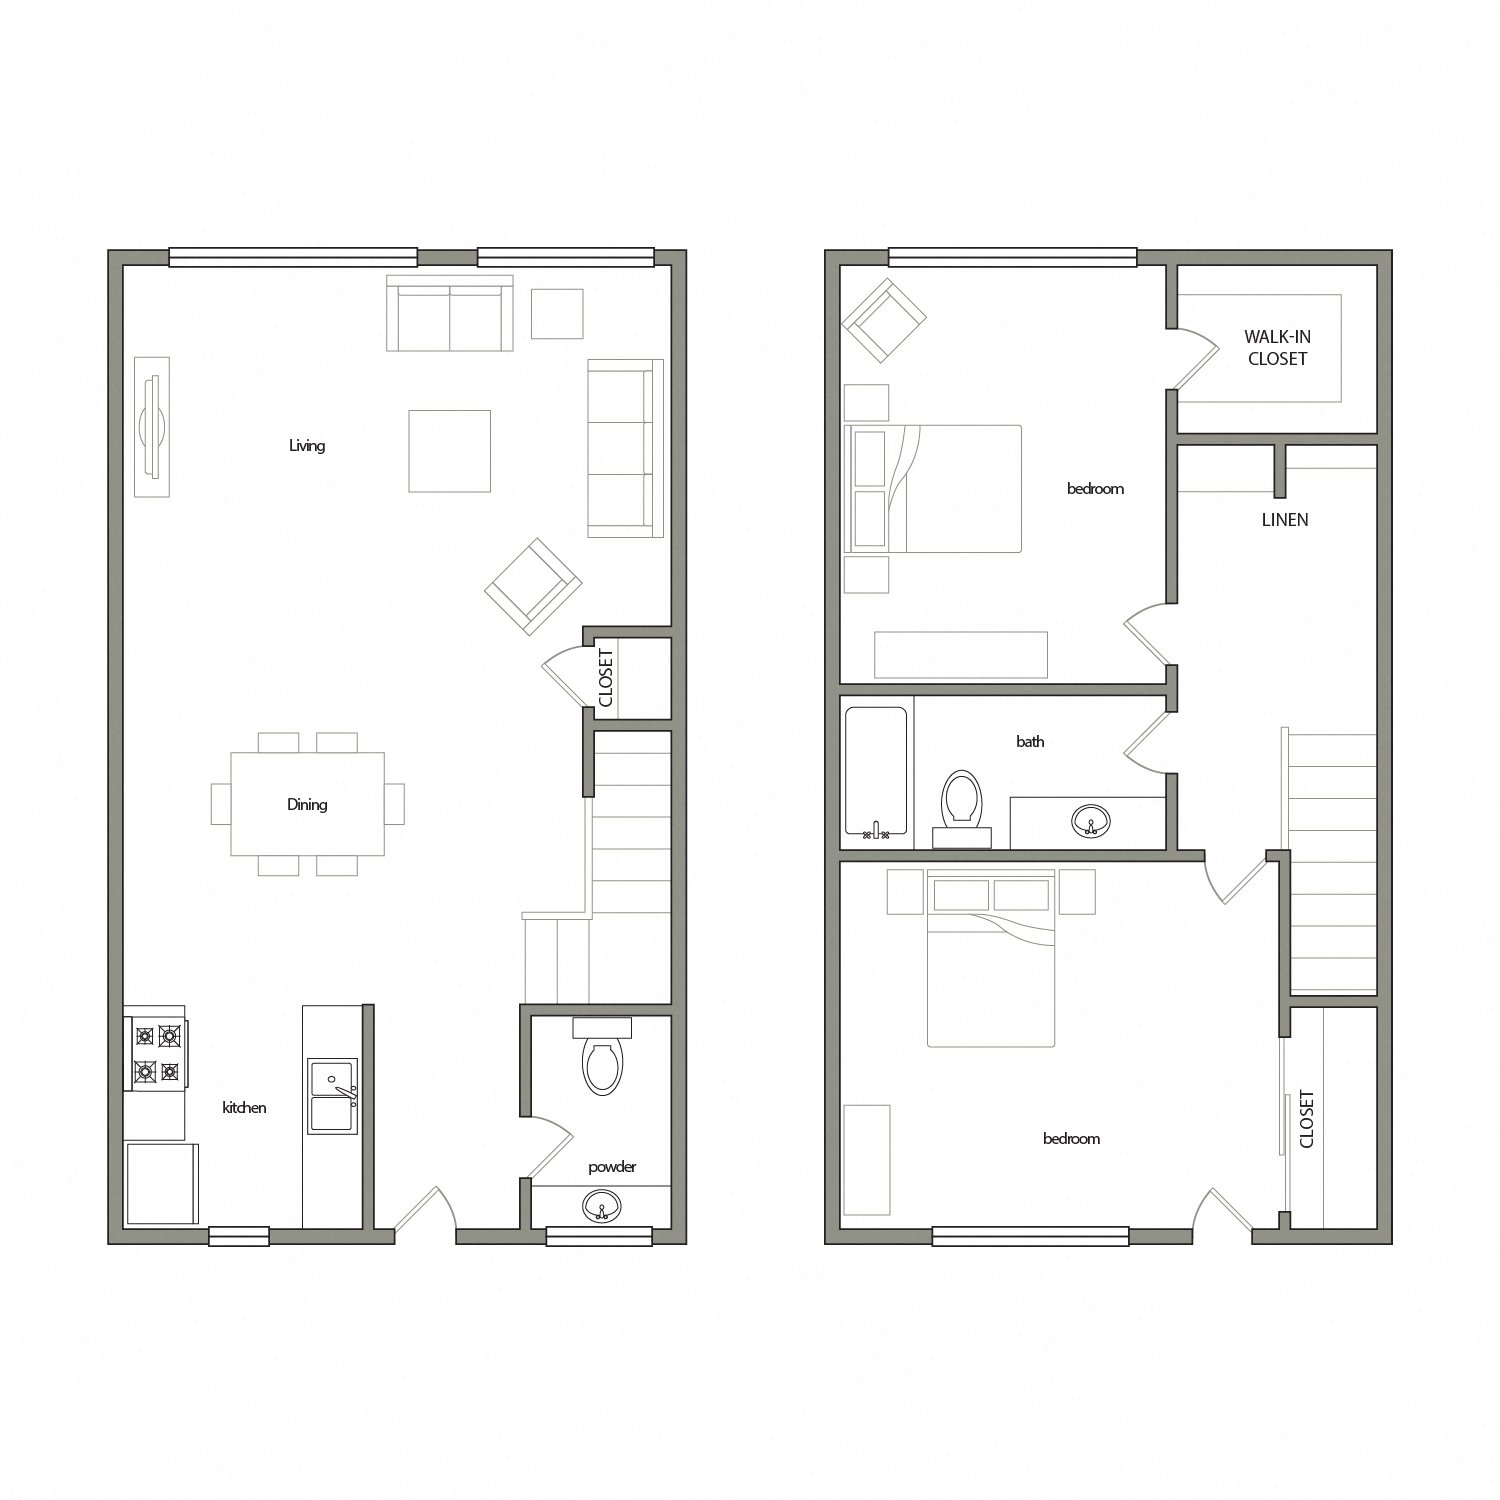 Toleda floor plan diagram. Two story apartment with two bedrooms, one and a half bathrooms, and an open kitchen dining and living area on the bottom floor.